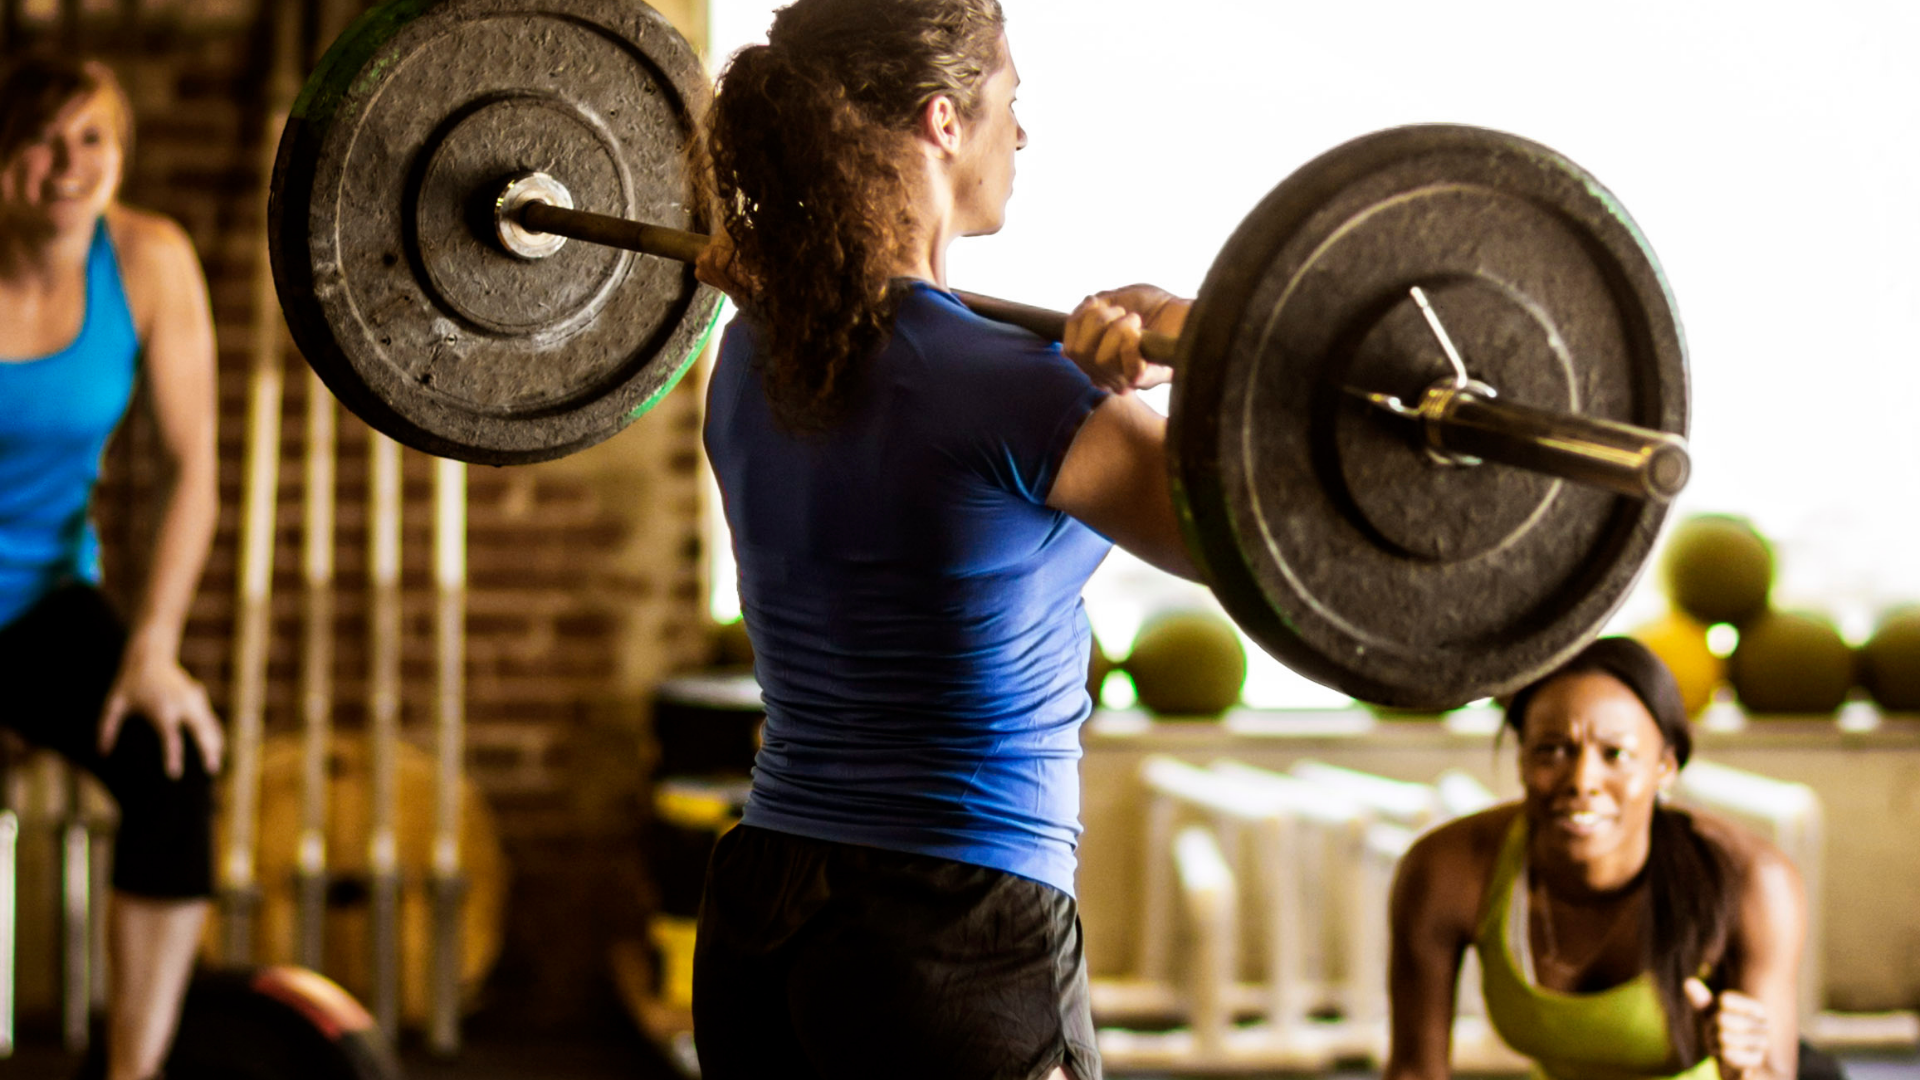 Blog: 48 'No men and no mirrors' – Women's experiences in the gym